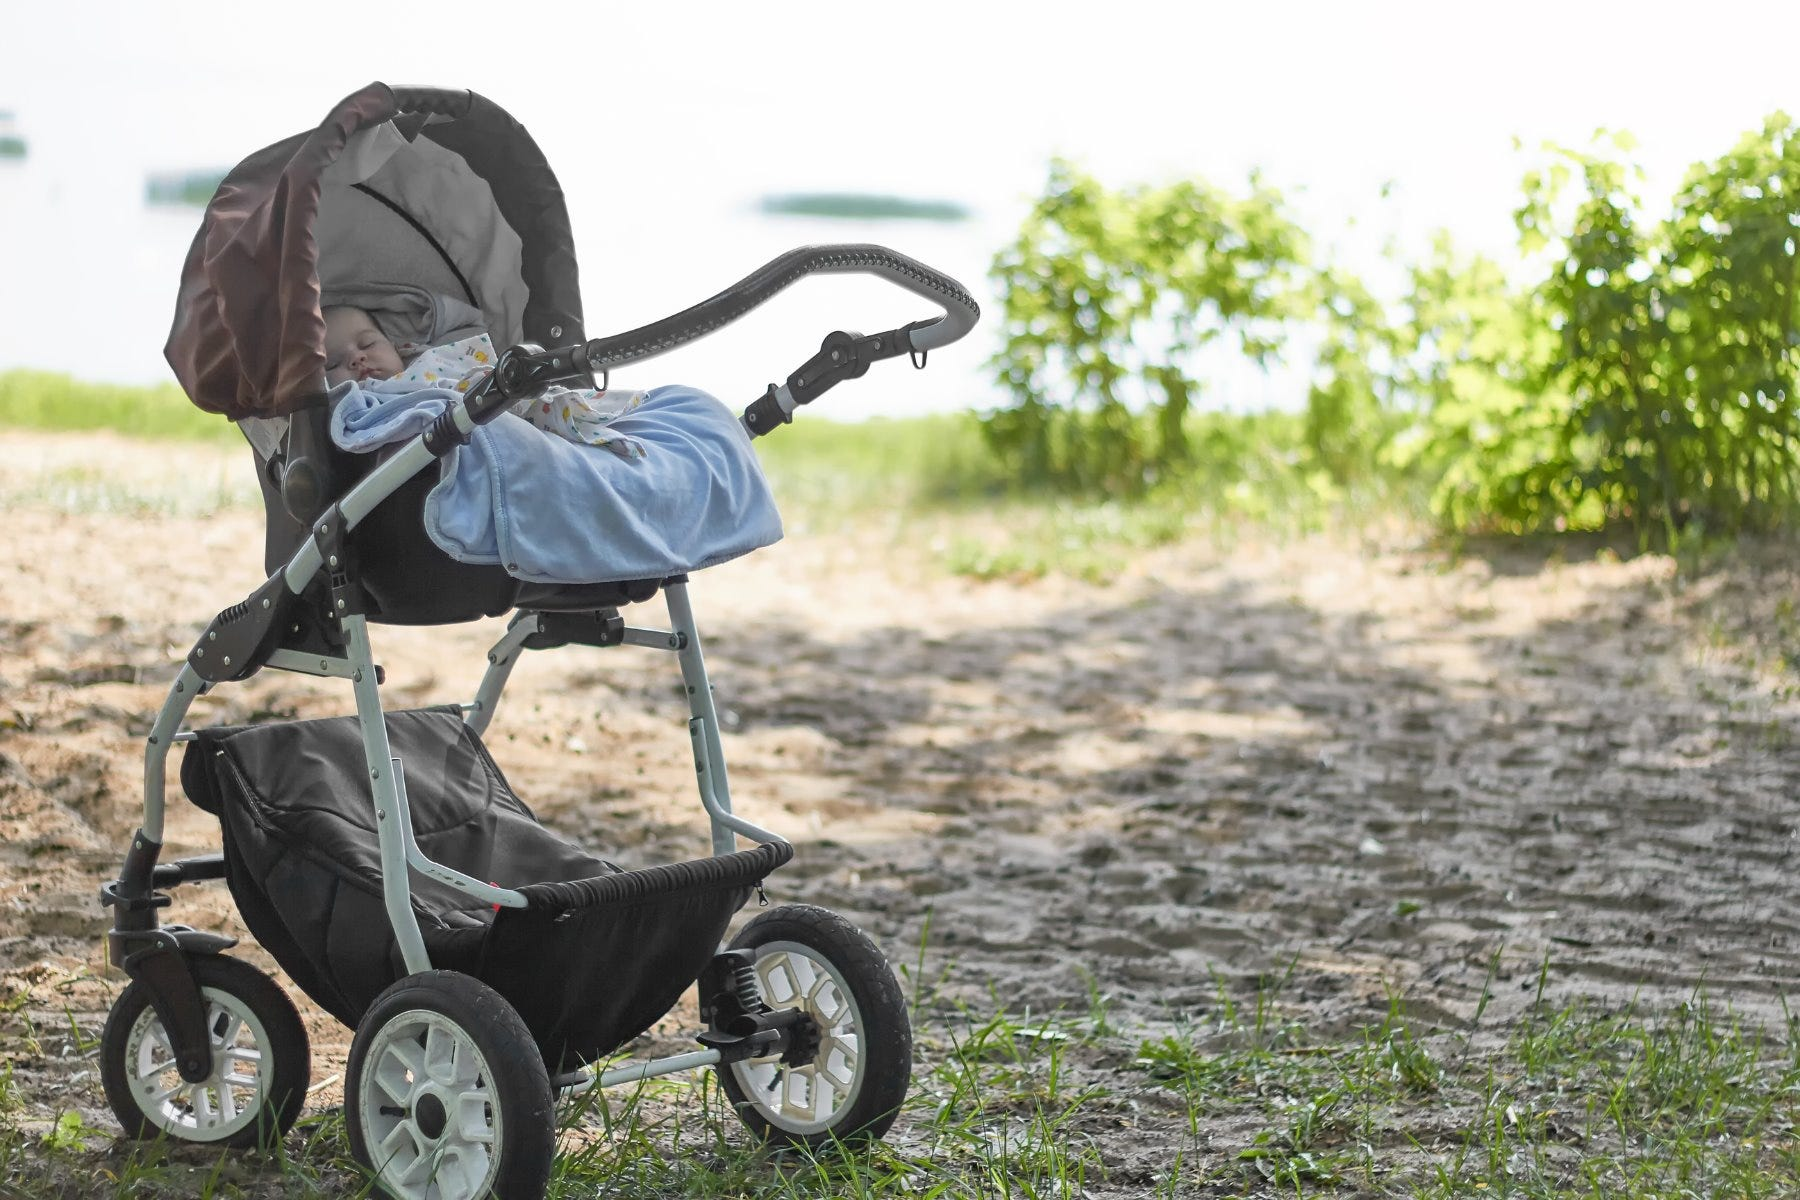 Guide to Picking the Right Stroller for Your Baby